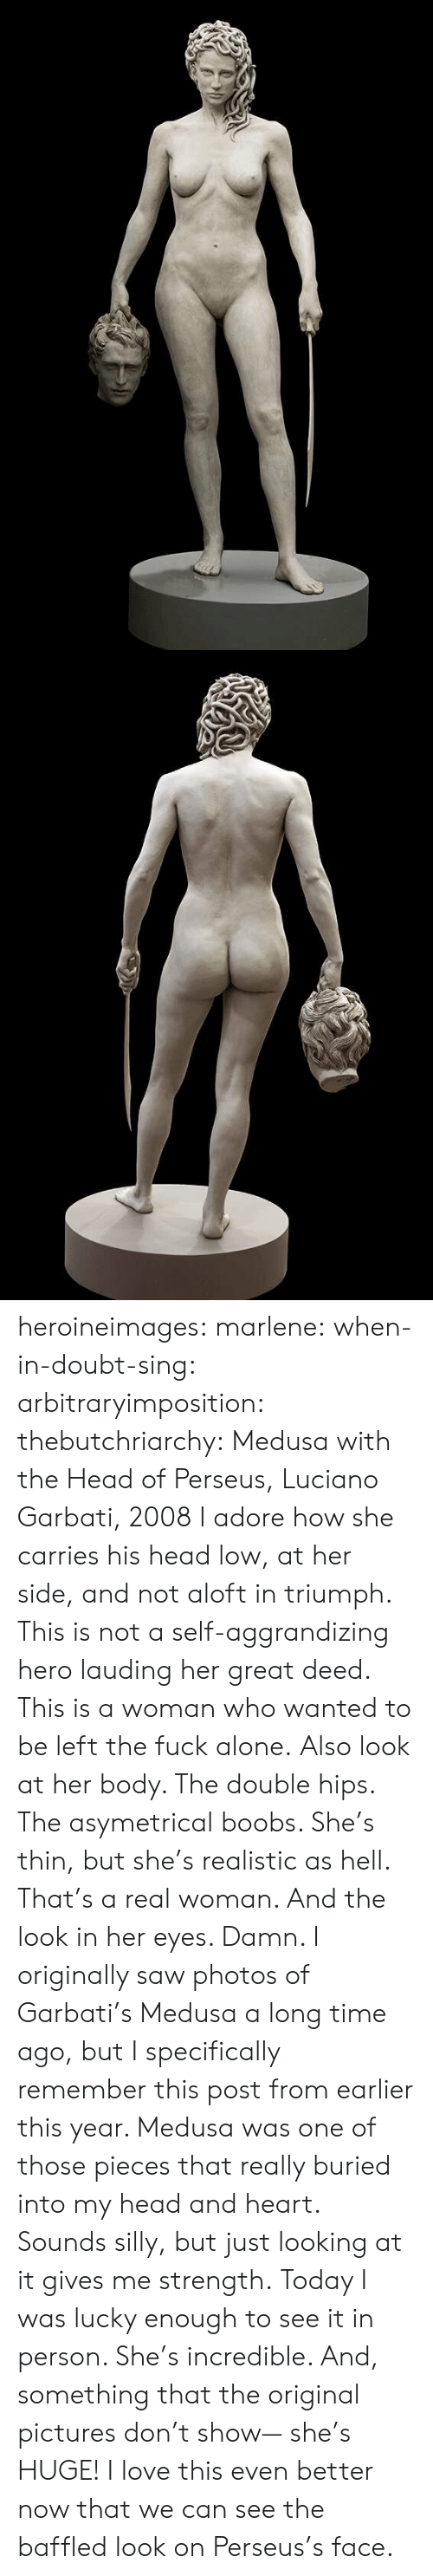 Being Alone, Head, and Love: heroineimages:  marlene:  when-in-doubt-sing:  arbitraryimposition:  thebutchriarchy: Medusa with the Head of Perseus, Luciano Garbati, 2008 I adore how she carries his head low, at her side, and not aloft in triumph.  This is not a self-aggrandizing hero lauding her great deed. This is a woman who wanted to be left the fuck alone.   Also look at her body. The double hips. The asymetrical boobs. She's thin, but she's realistic as hell. That's a real woman.  And the look in her eyes. Damn.   I originally saw photos of Garbati's Medusa a long time ago, but I specifically remember this post from earlier this year. Medusa was one of those pieces that really buried into my head and heart. Sounds silly, but just looking at it gives me strength. Today I was lucky enough to see it in person. She's incredible. And, something that the original pictures don't show— she's HUGE!    I love this even better now that we can see the baffled look on Perseus's face.